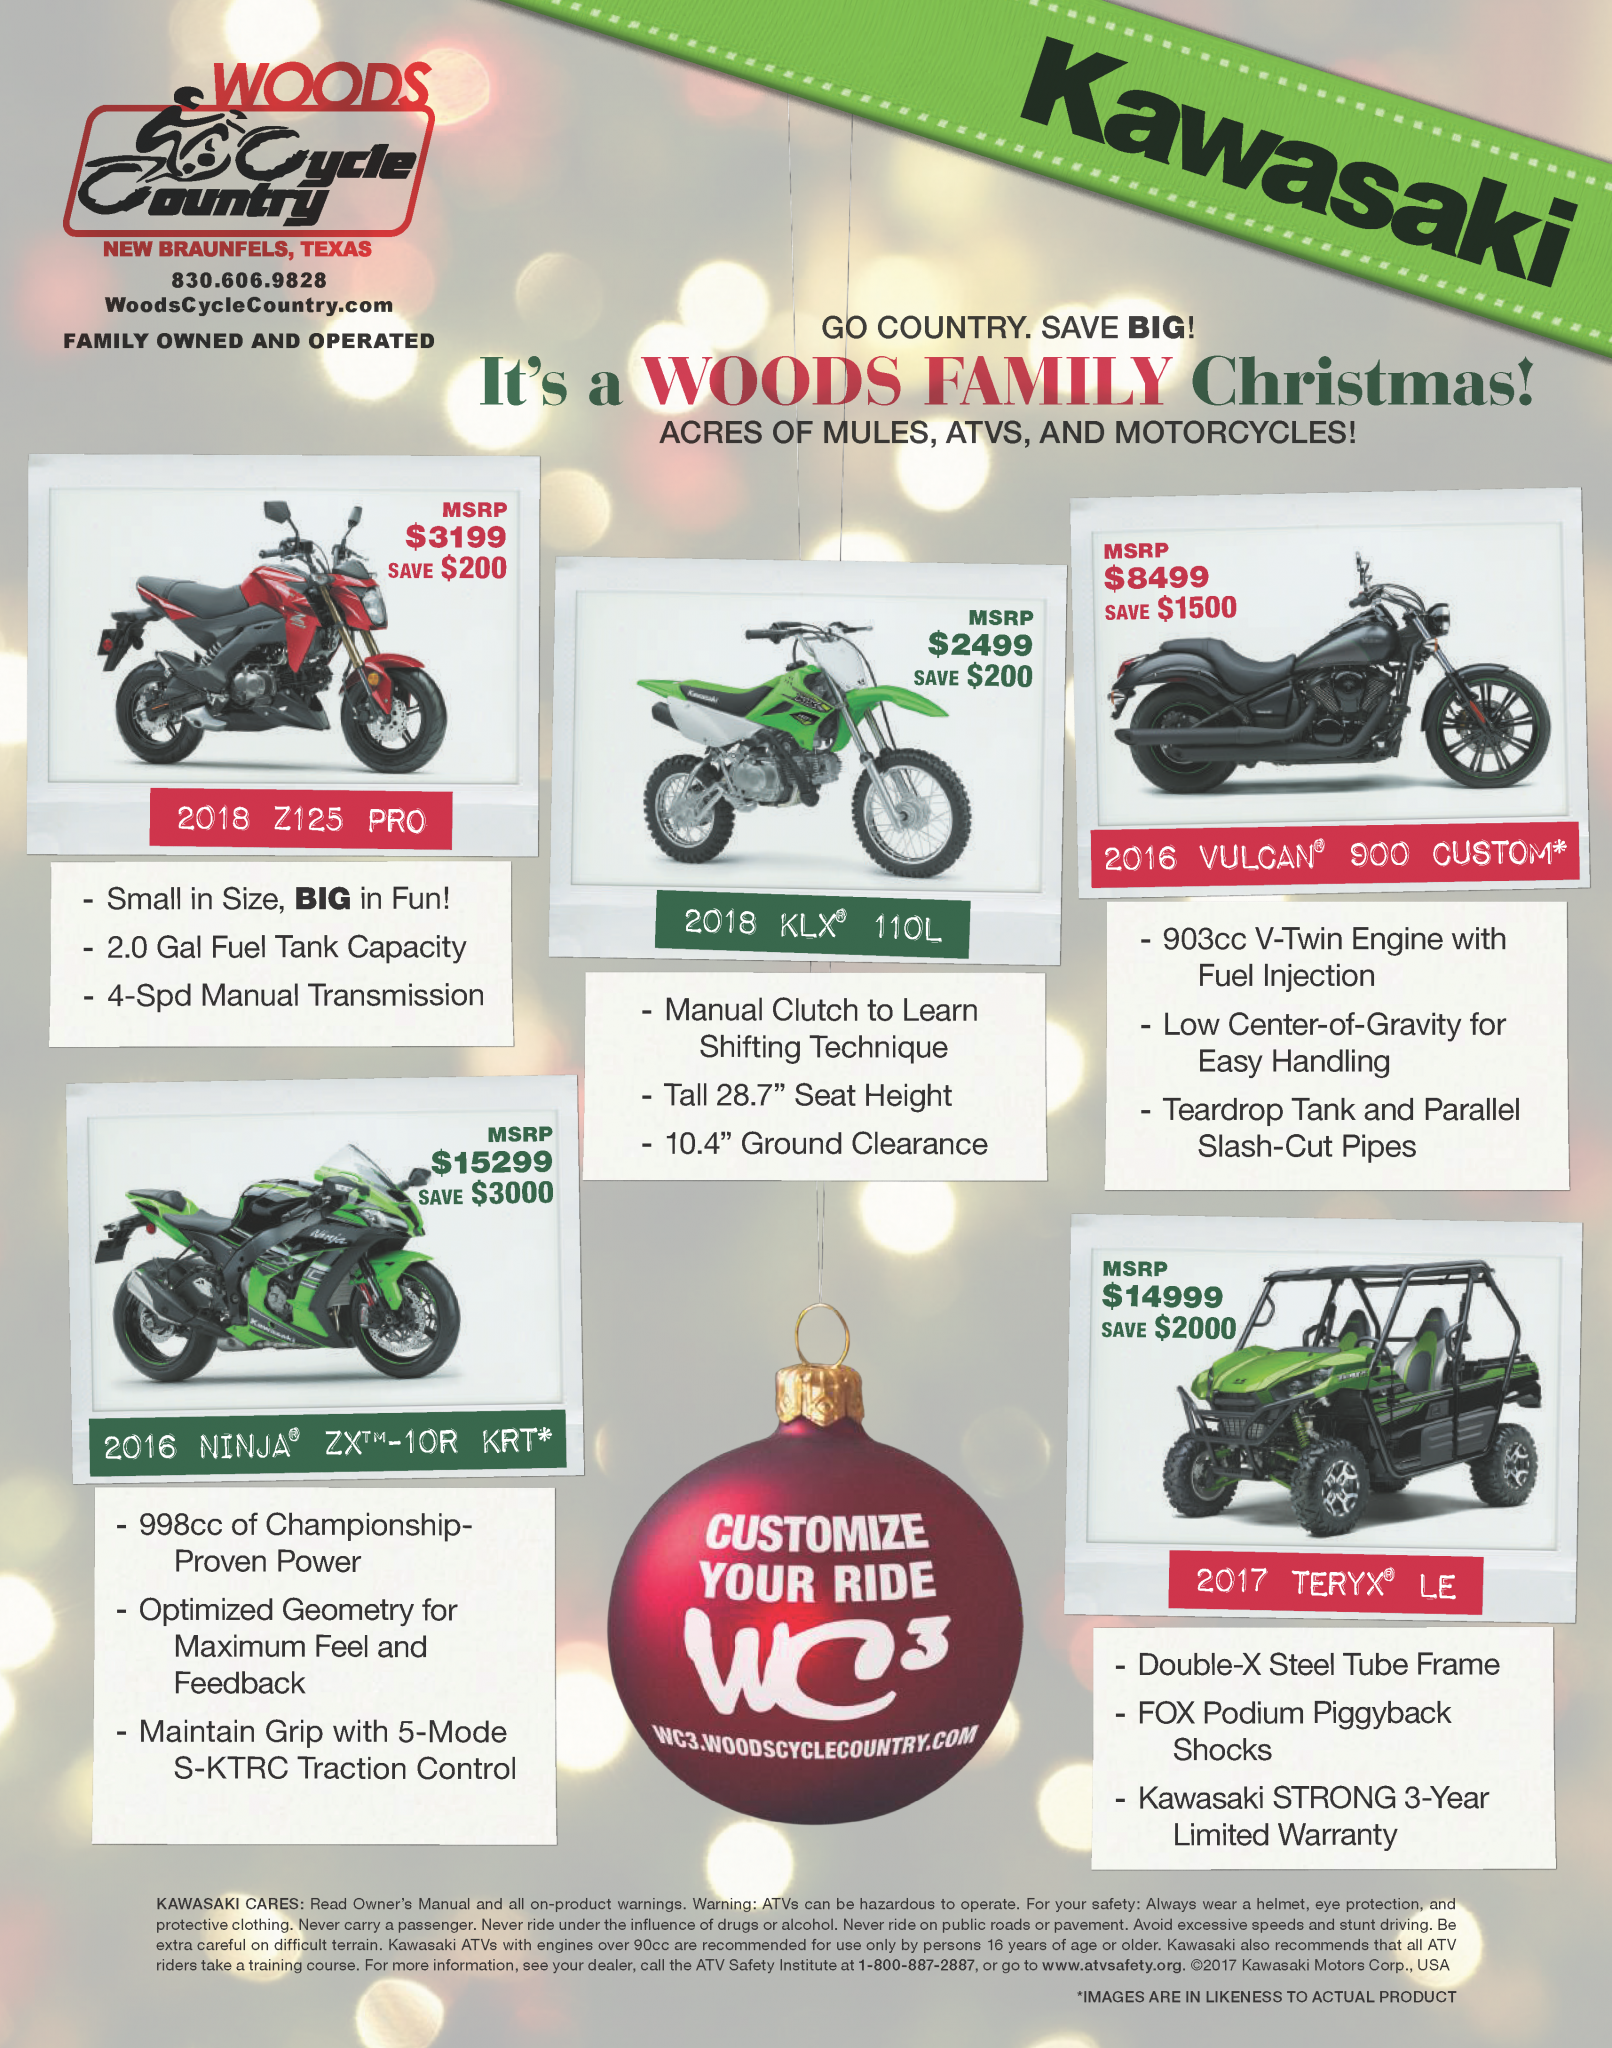 Wcc 12th Customer Christmas Party Woods Cycle Country Blog New braunfels river recreation update. woods cycle country